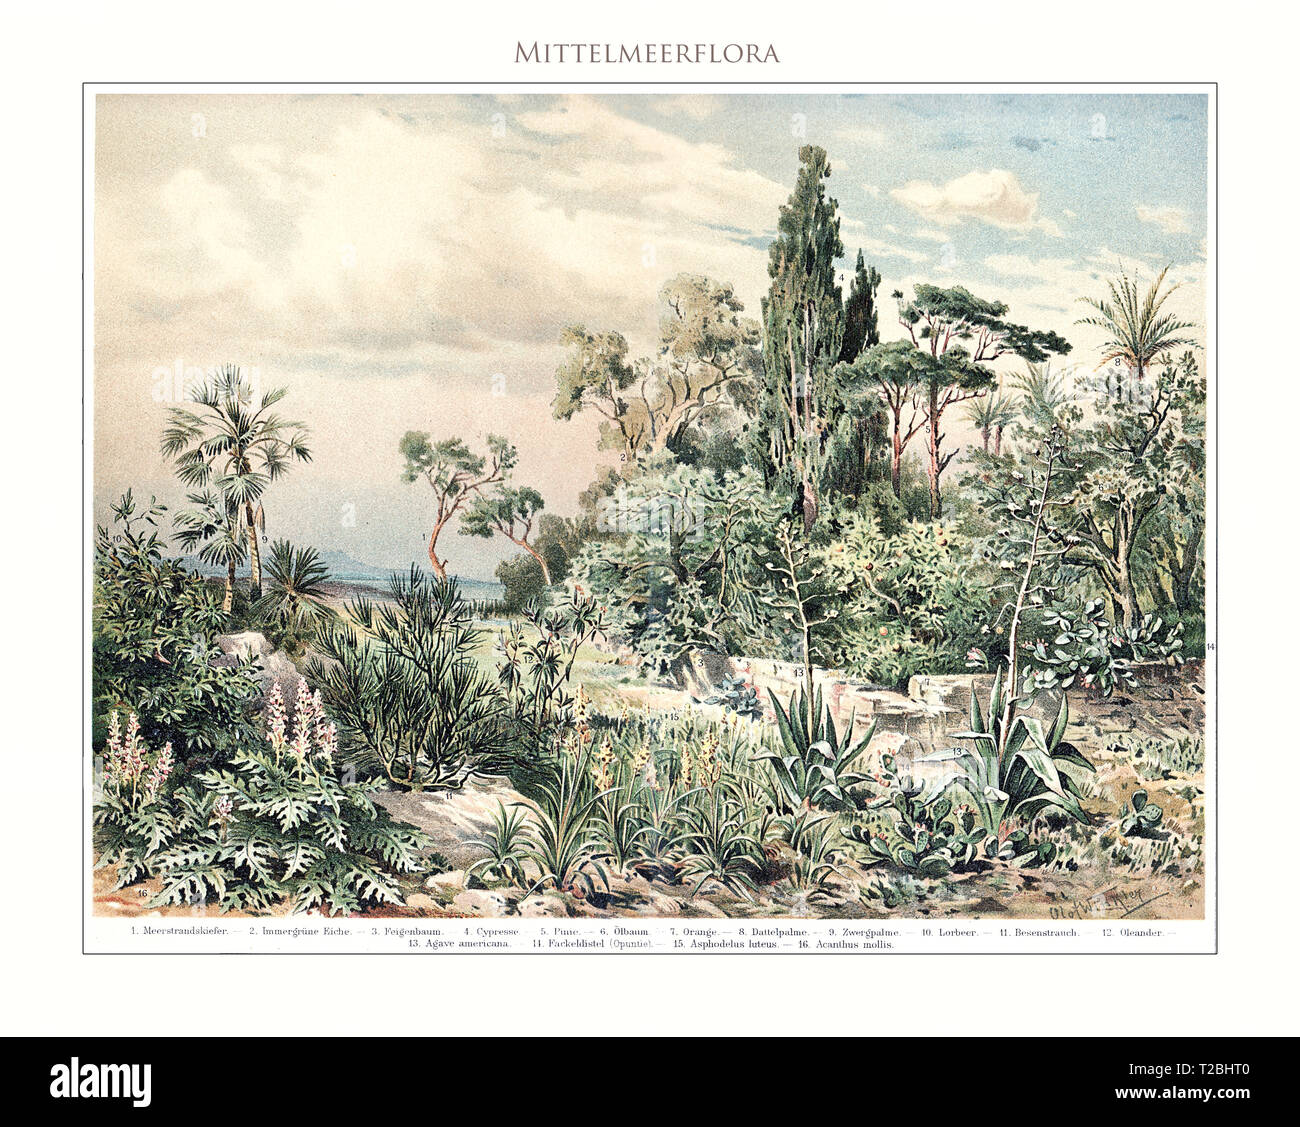 Mediterranean flora - table illustrated and restored from Meyers Konversations-Lexikon 5. edition (1893-1901), universal encyclopedia in German language. - Stock Image